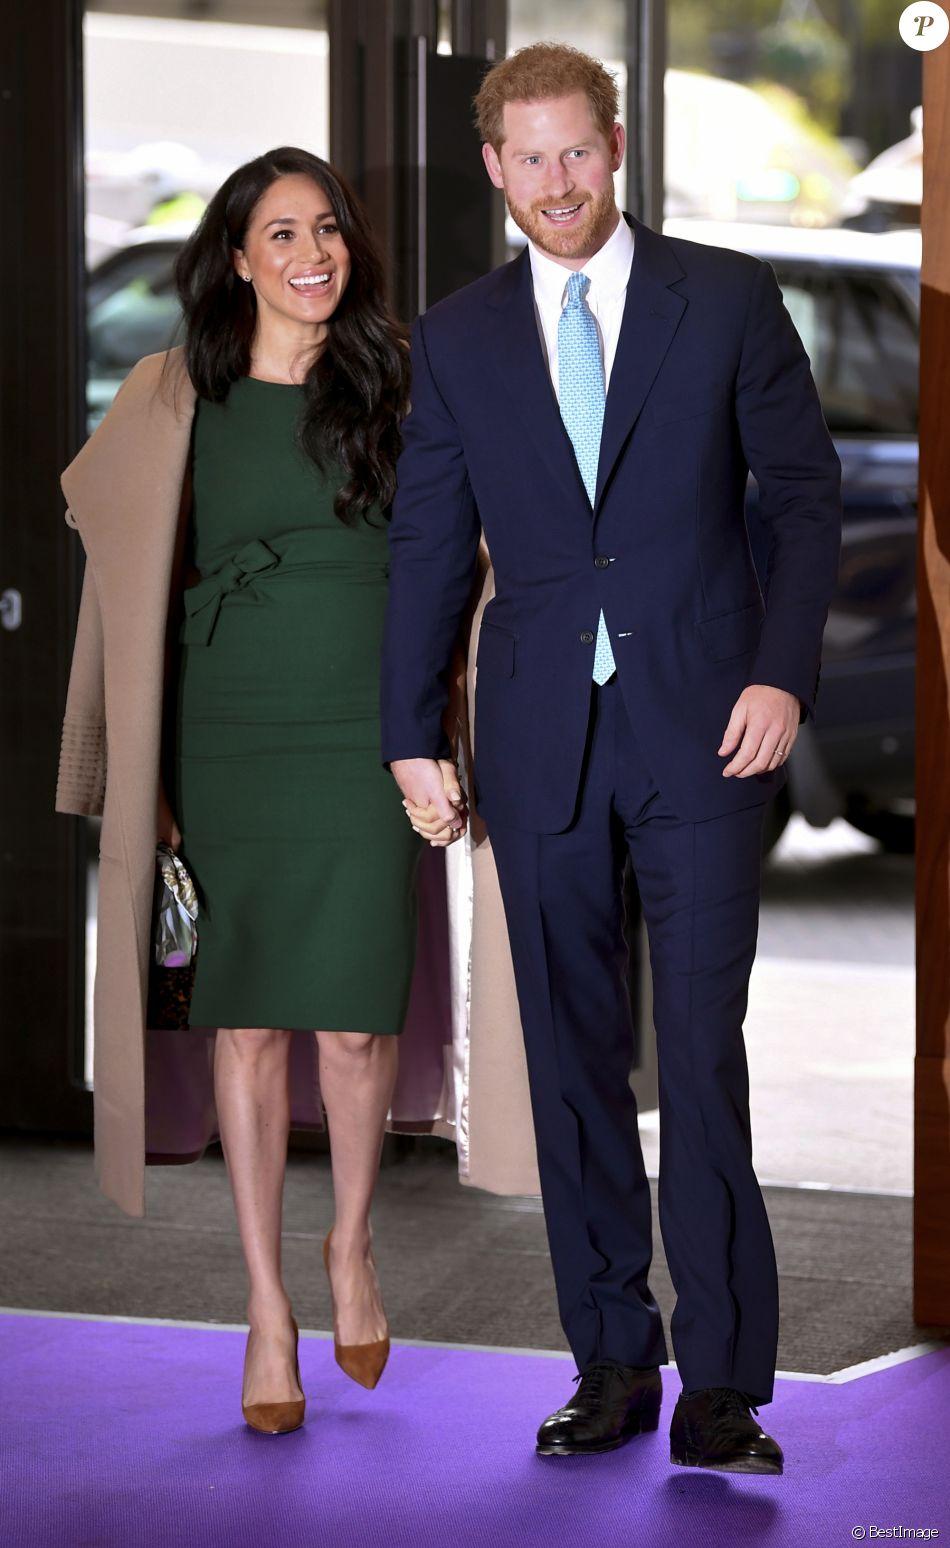 Le prince Harry, duc de Sussex, et Meghan Markle, duchesse de Sussex, arrivent à la cérémonie des WellChild Awards à Londres le 15 octobre 2019.